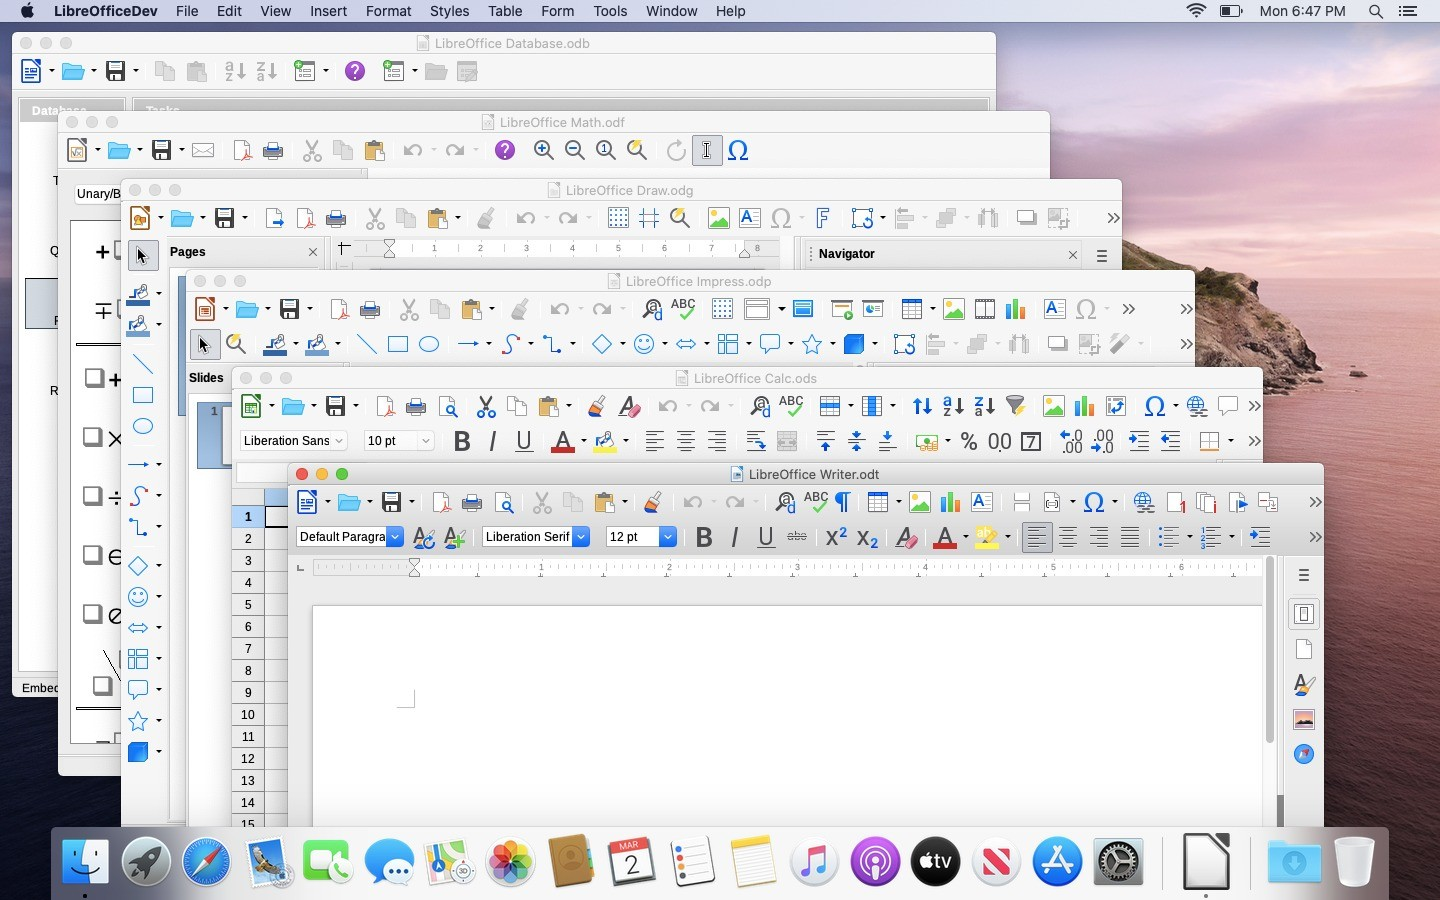 Libre office for windows10